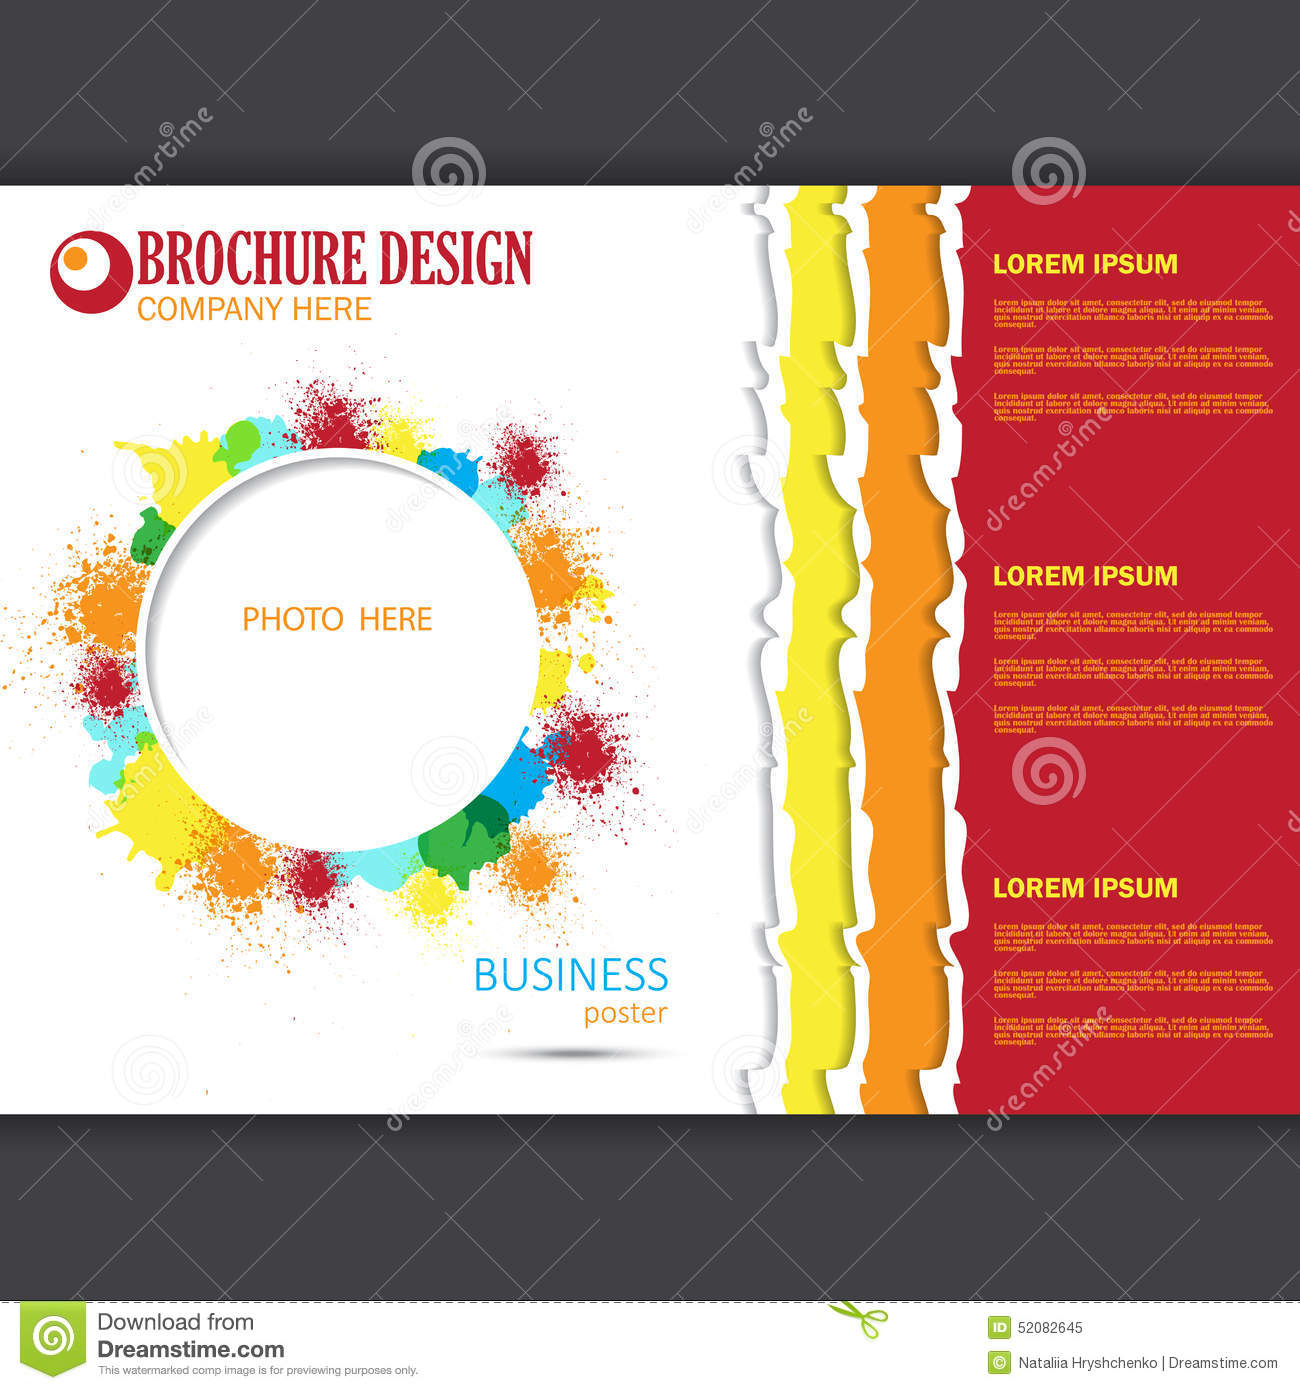 Poster design layout templates - Vector Horizontal Presentation Of Business Poster Royalty Free Stock Photo